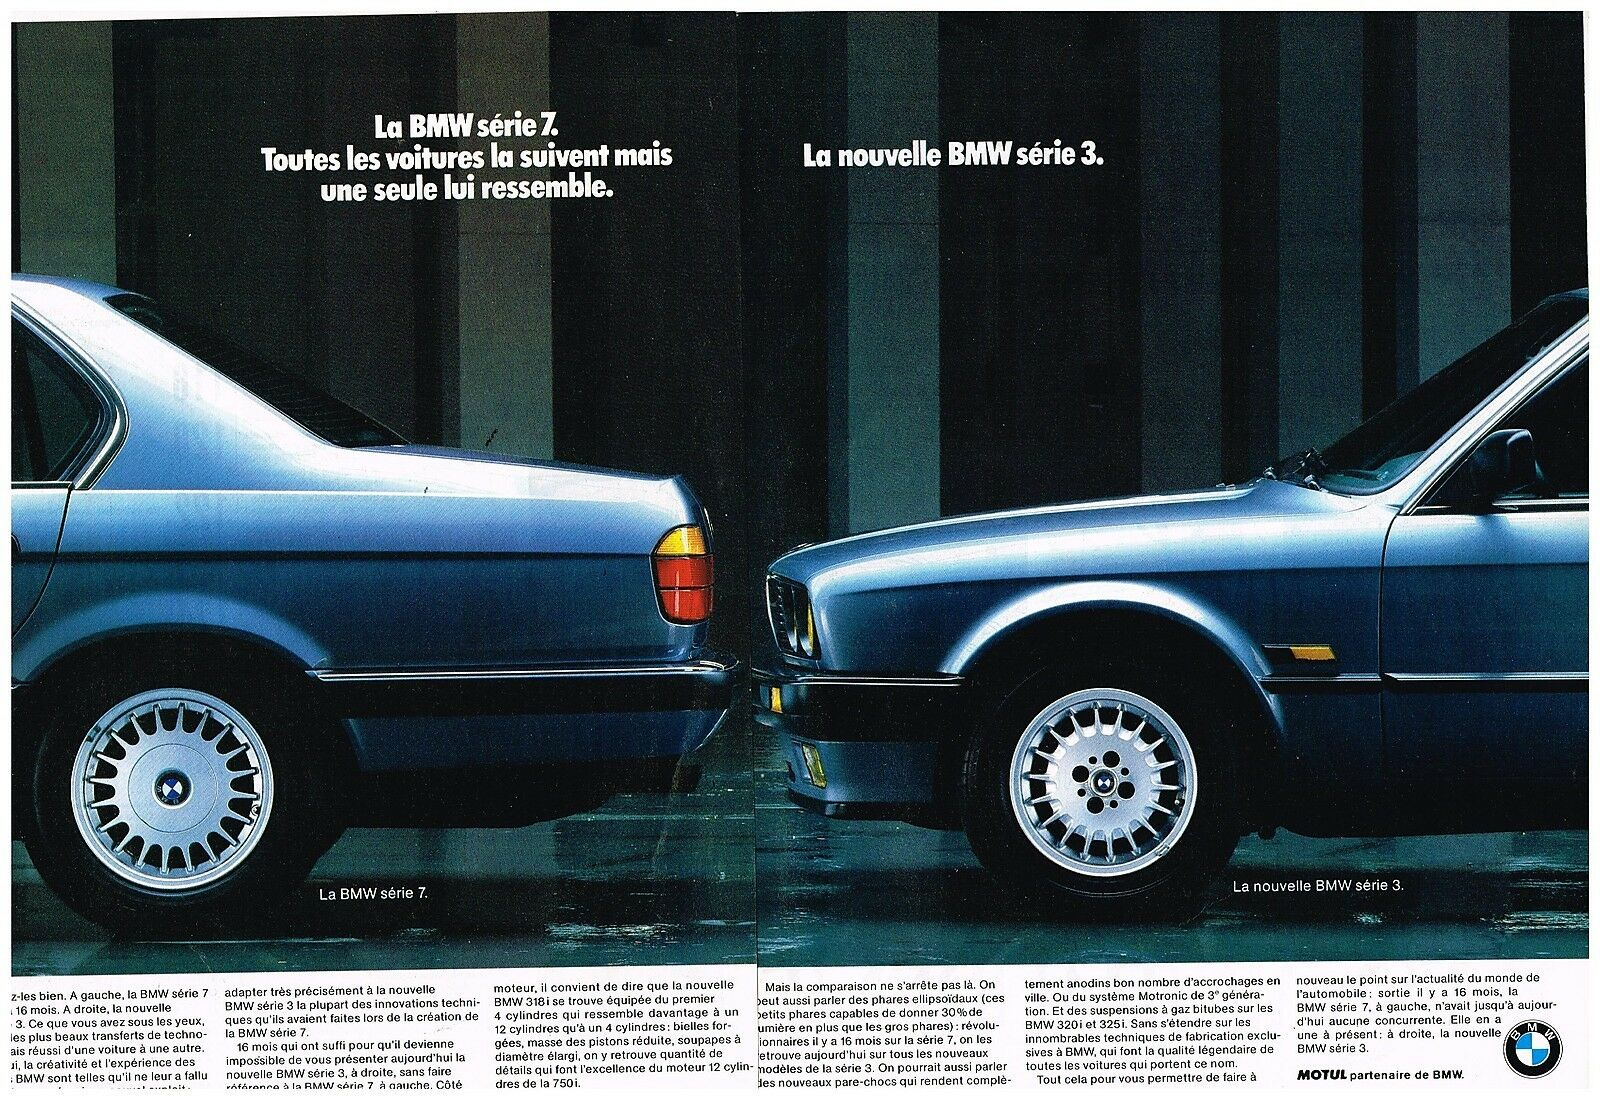 publicit advertising 1988 2 pages bmw serie 3 et serie 7 eur 5 00 picclick fr. Black Bedroom Furniture Sets. Home Design Ideas